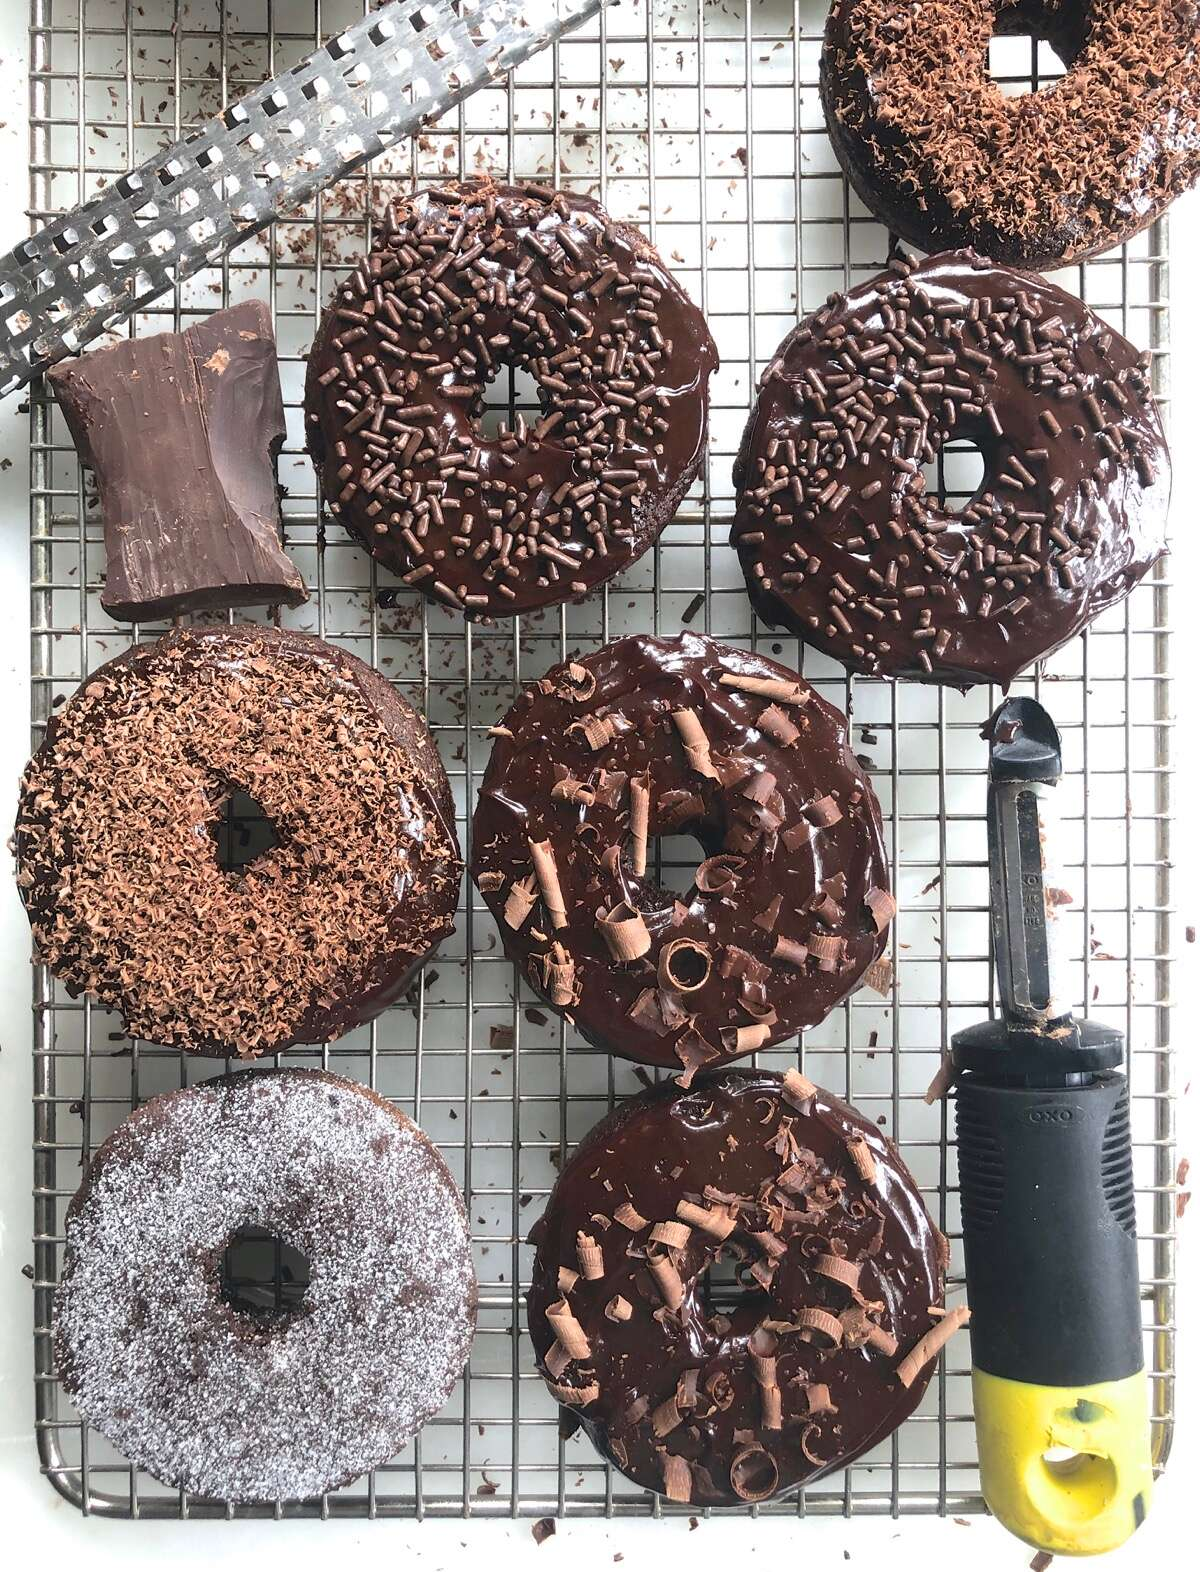 Frosted and sprinkled Chocolate Fudge Cake Doughnuts on a cooling rack.